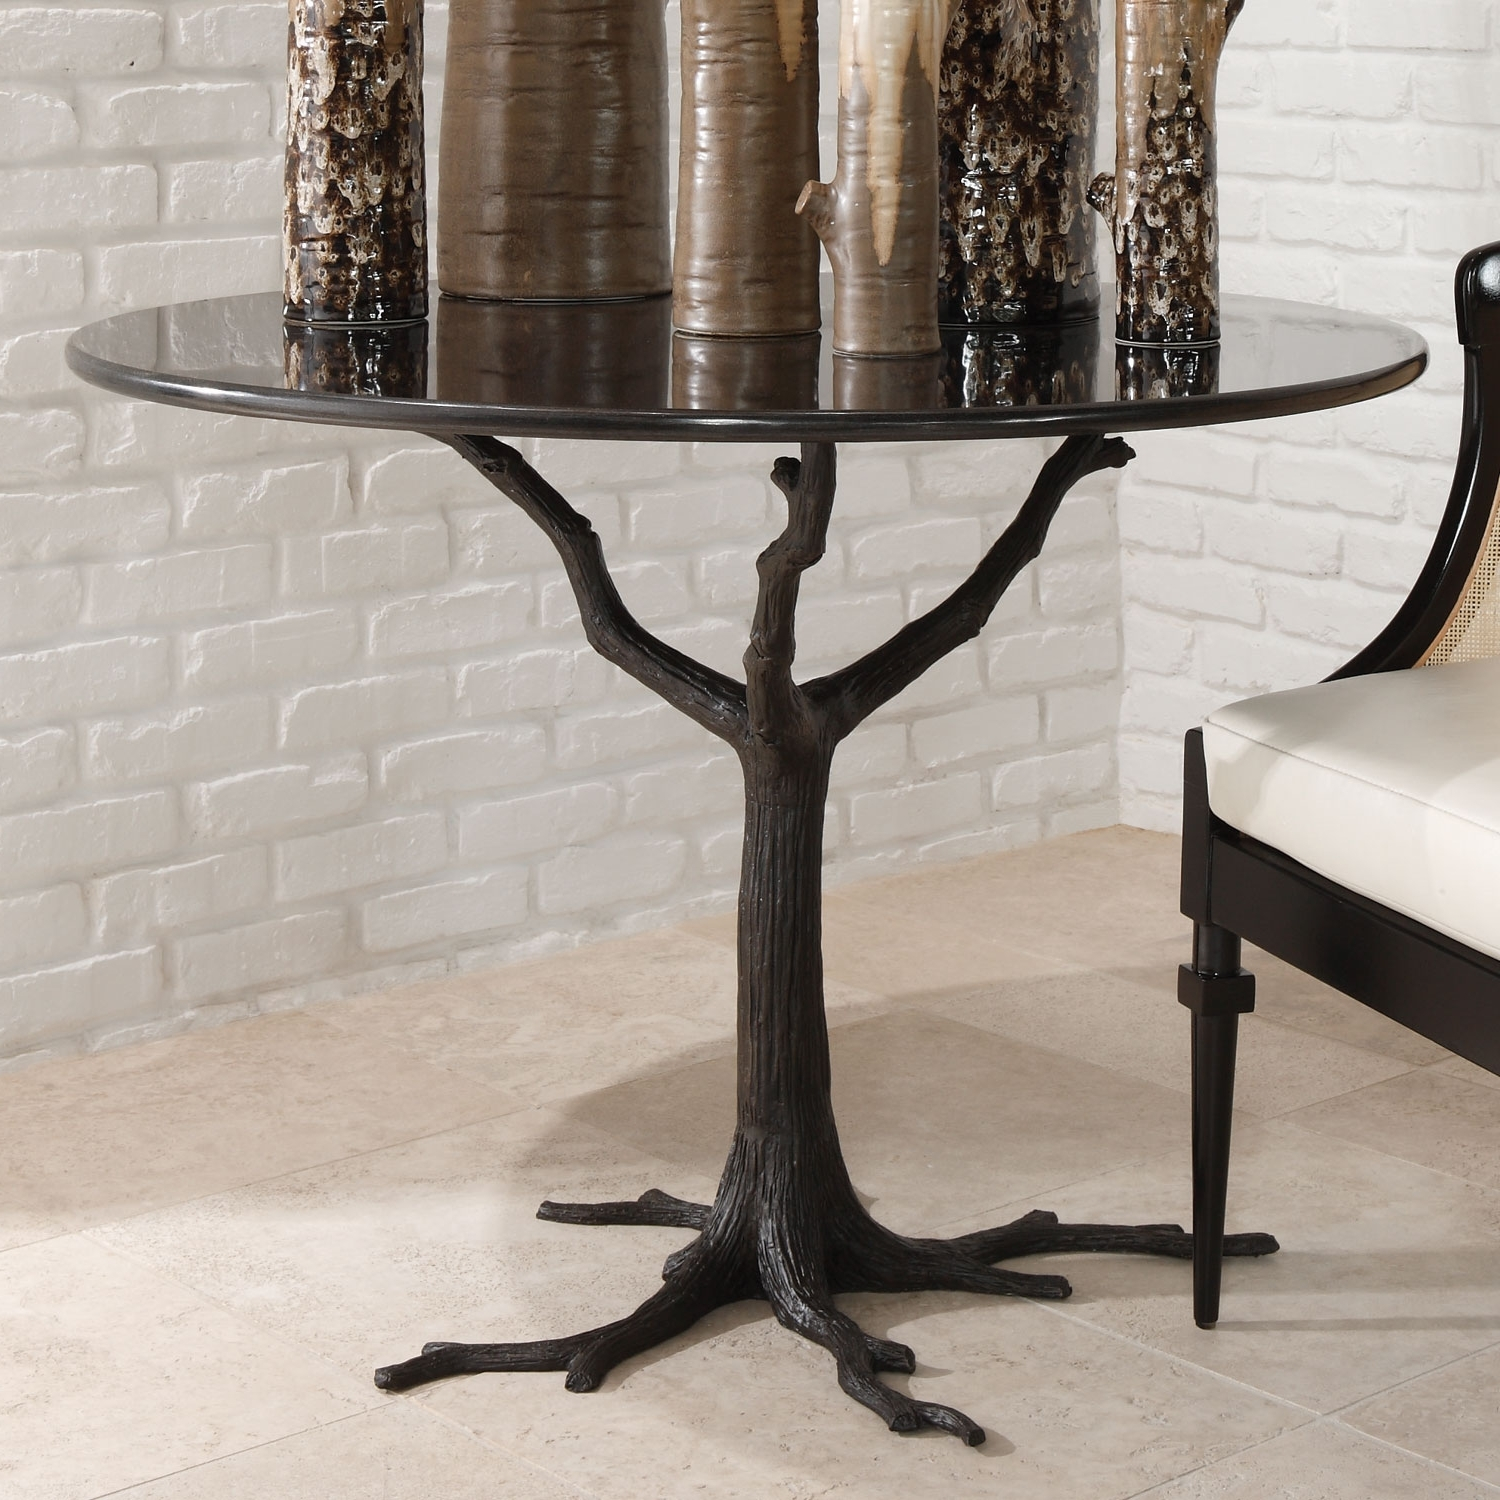 Fashionable Faux Bois Coffee Tables With Regard To Global Views Faux Bois Dining Table  (View 11 of 20)